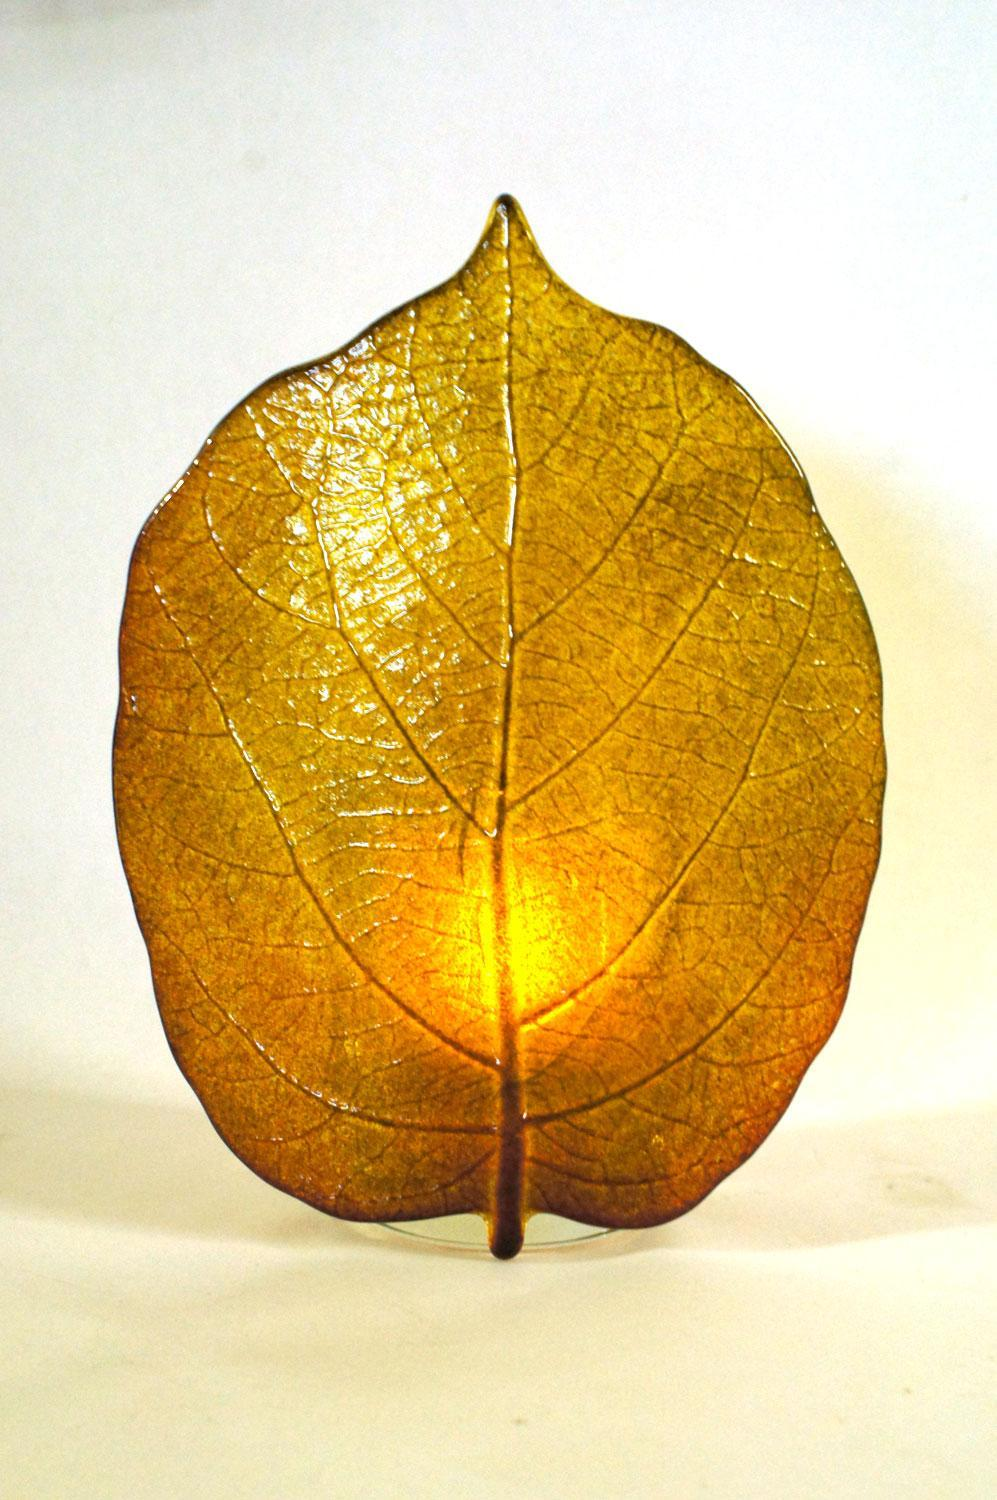 Bulleye Lamp Kiwi Leaf Casting And Slumping Mold | Glass